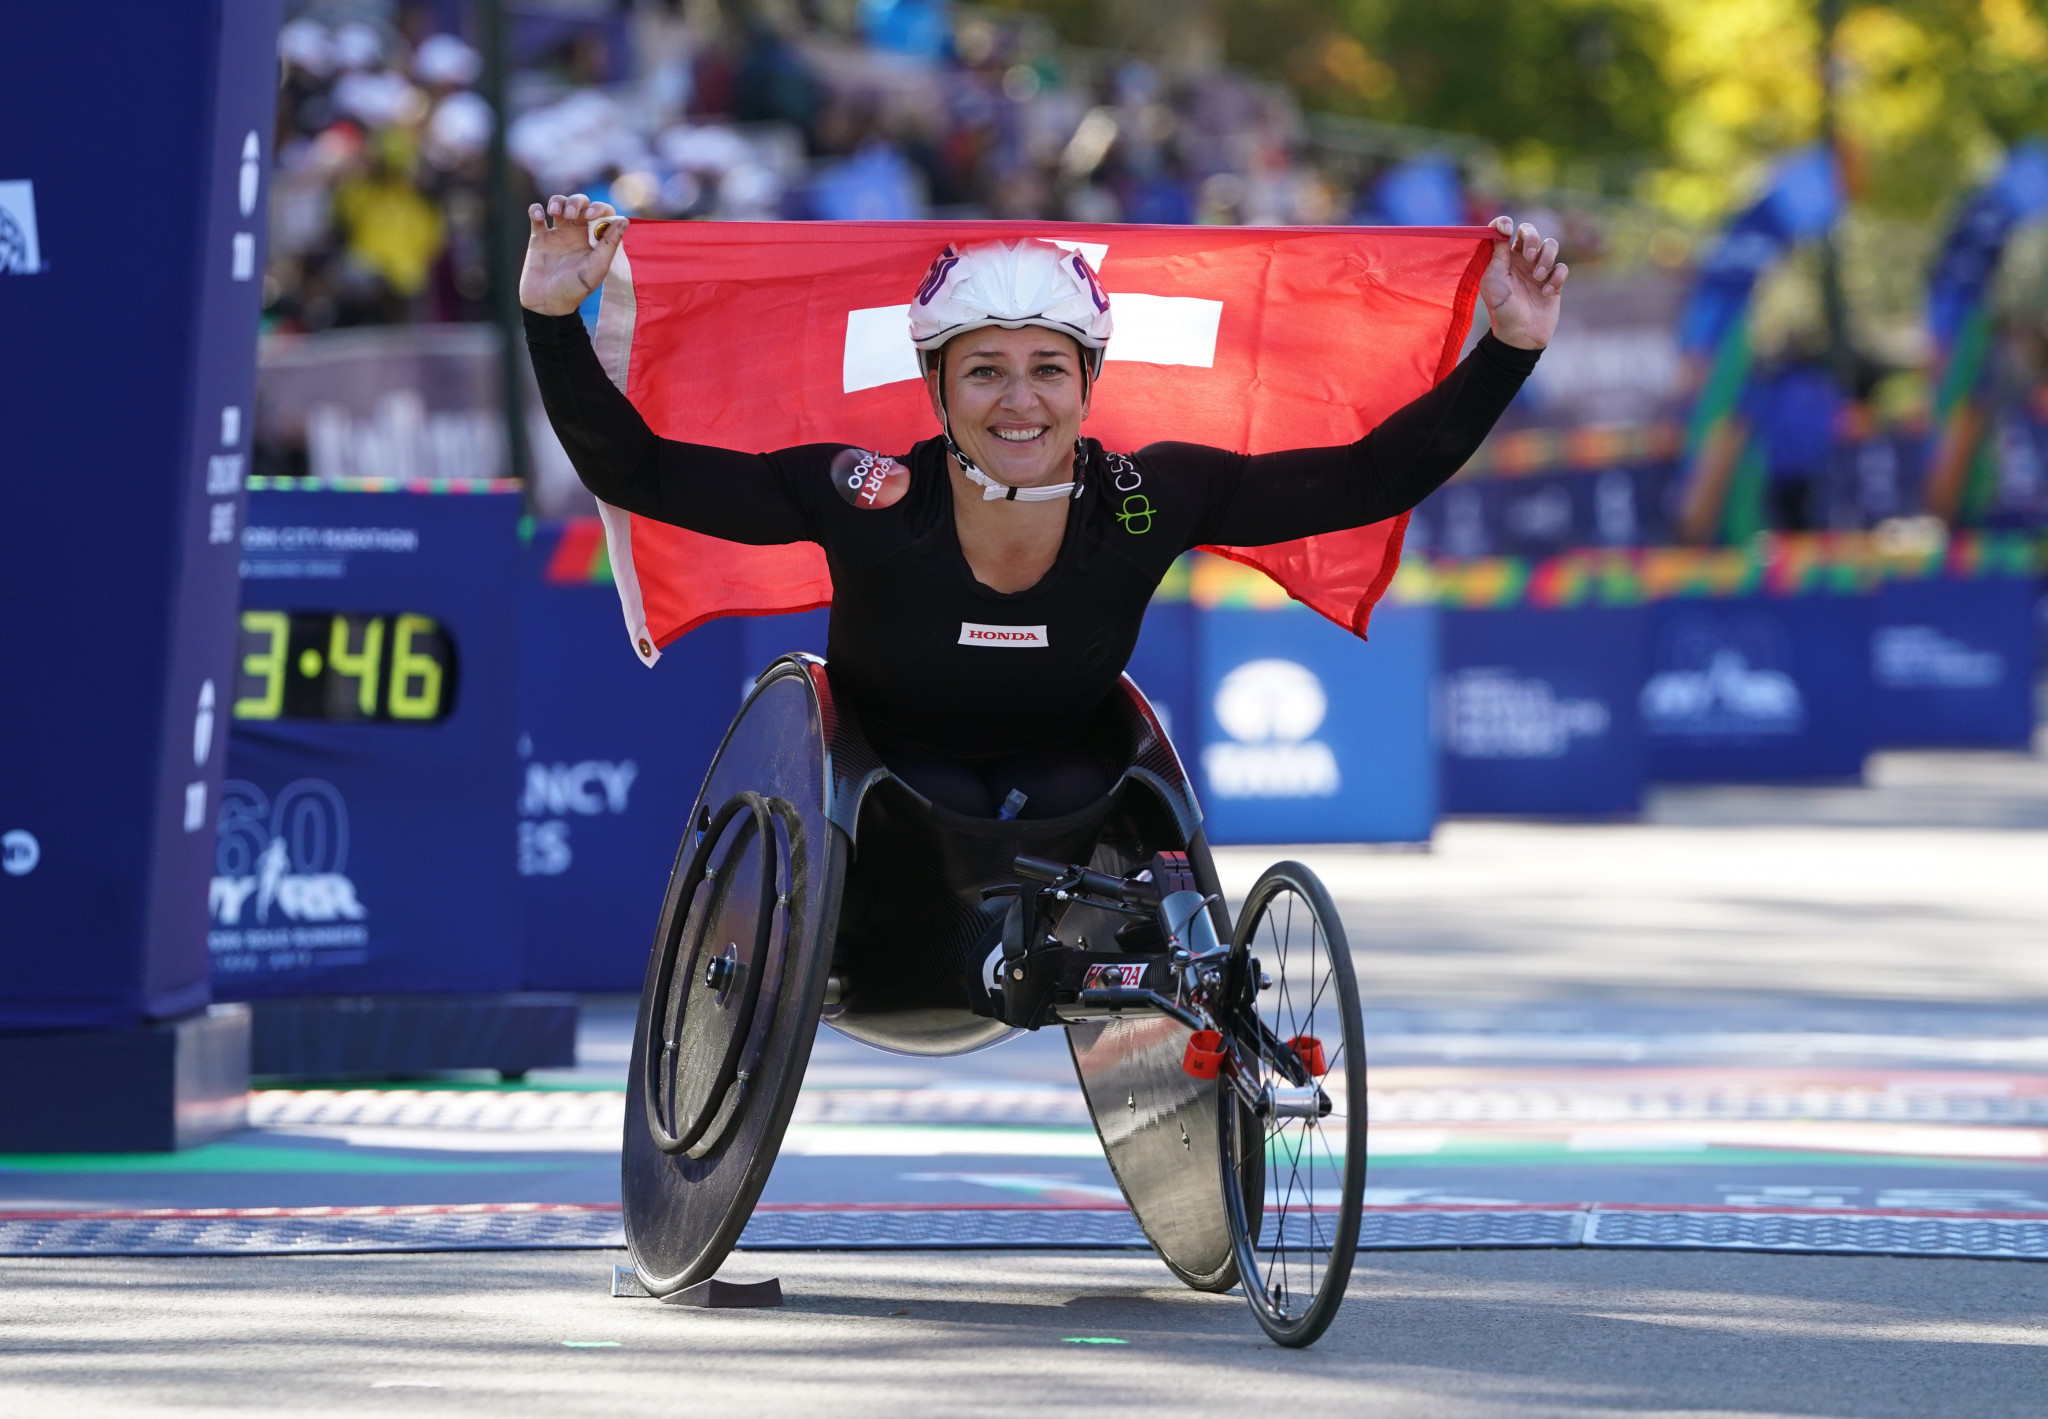 Defending champions Romanchuk and Schär to headline London Marathon wheelchair races